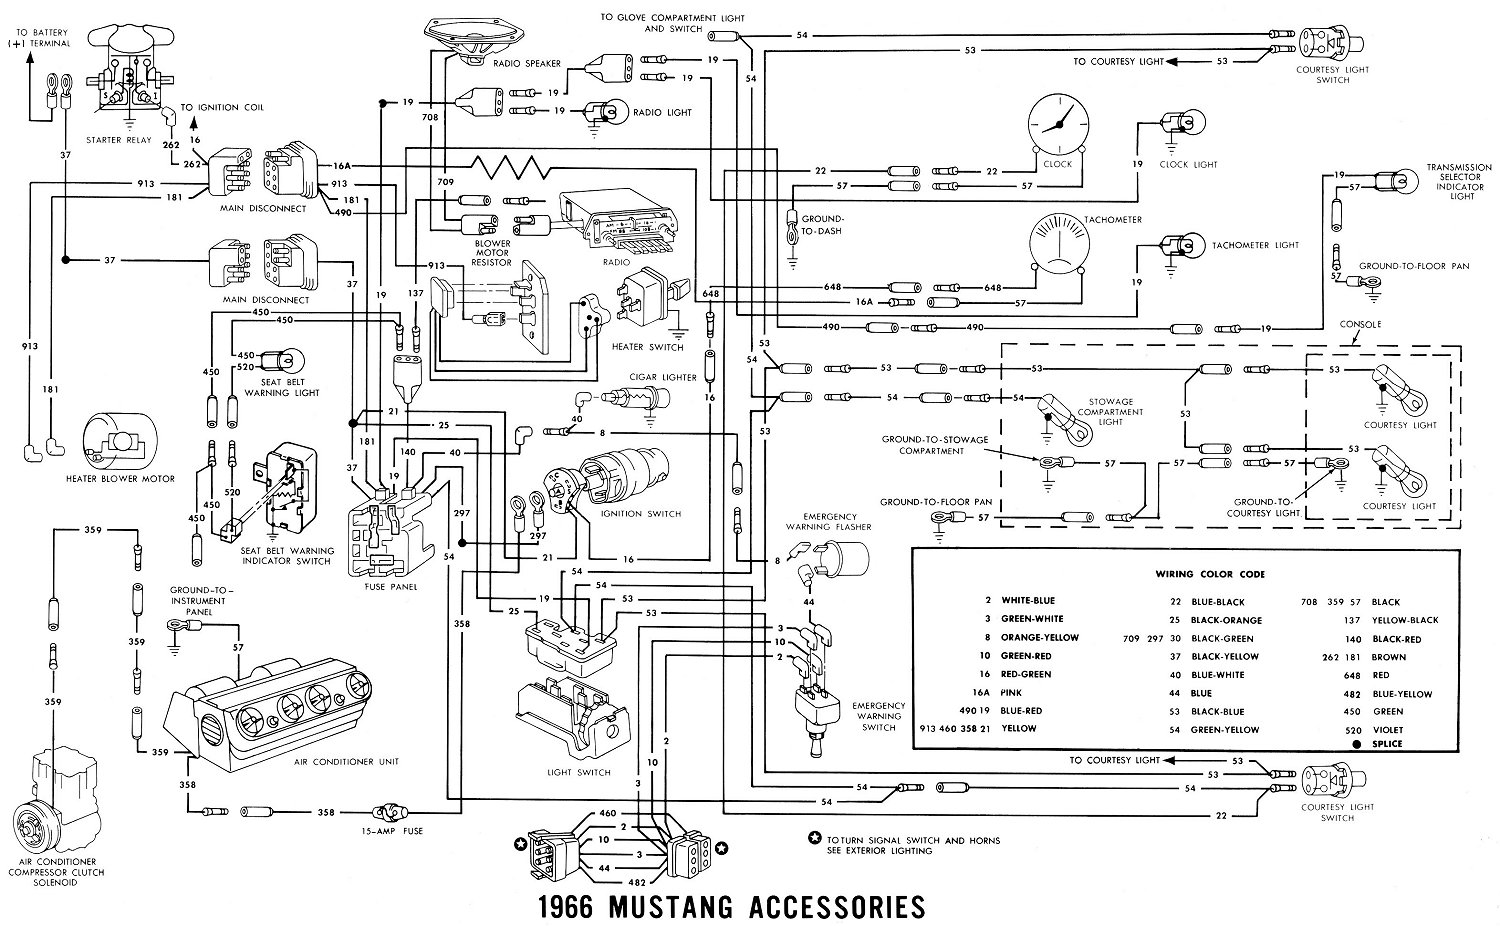 66acces1 1966 mustang wiring diagrams average joe restoration f100 wiring diagram at virtualis.co